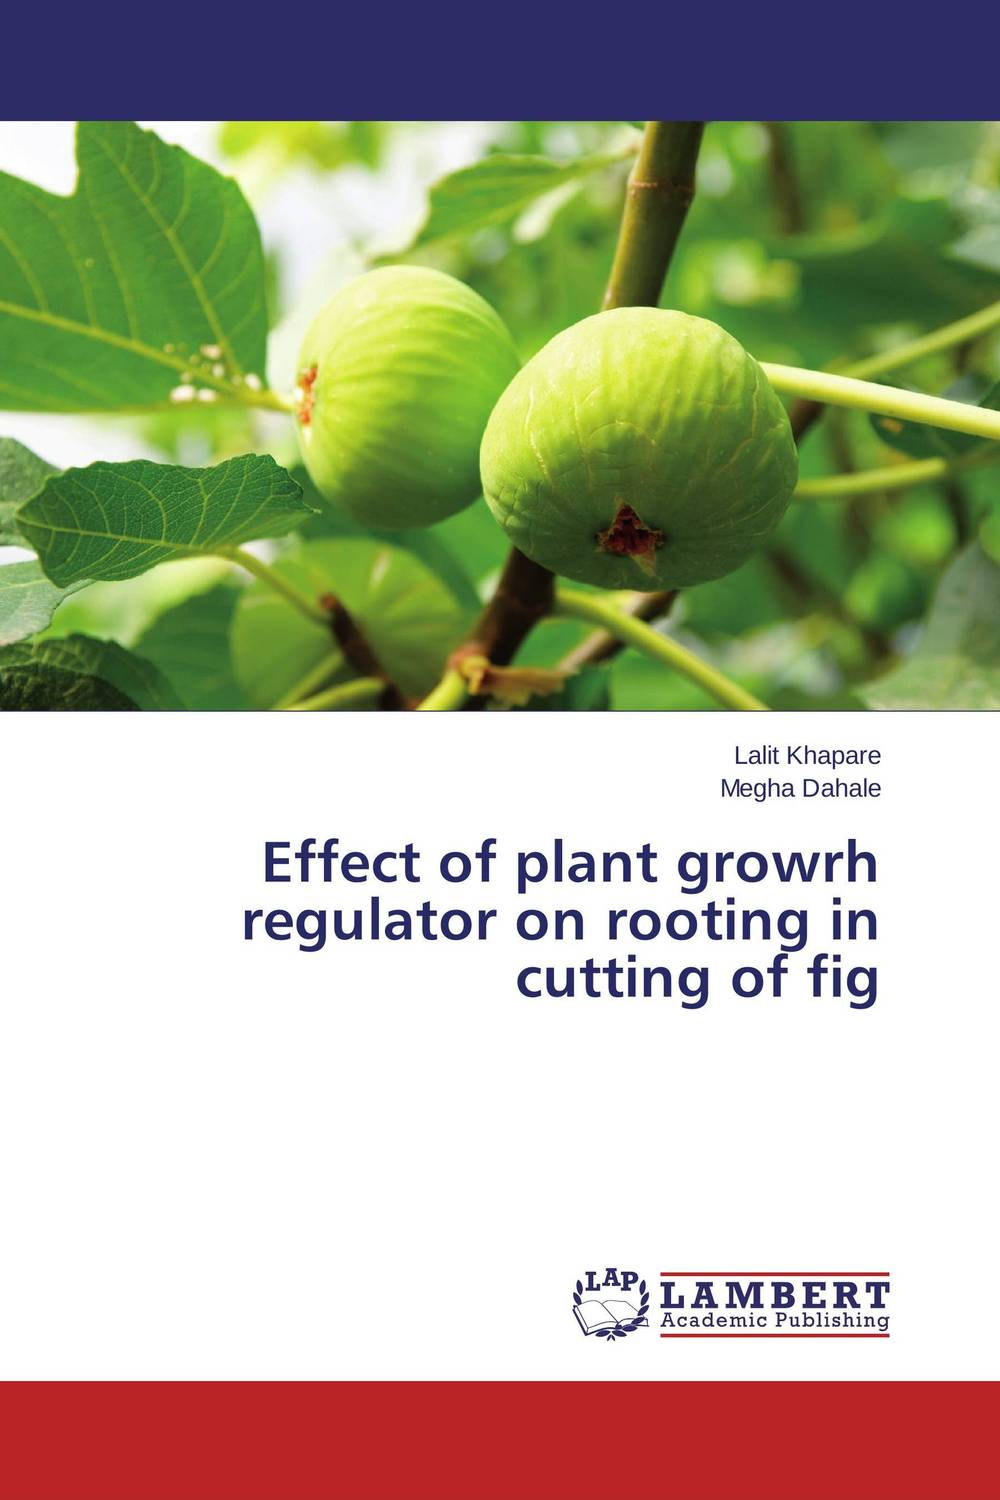 Effect of plant growrh regulator on rooting in cutting of fig biochemical composition of plant roots